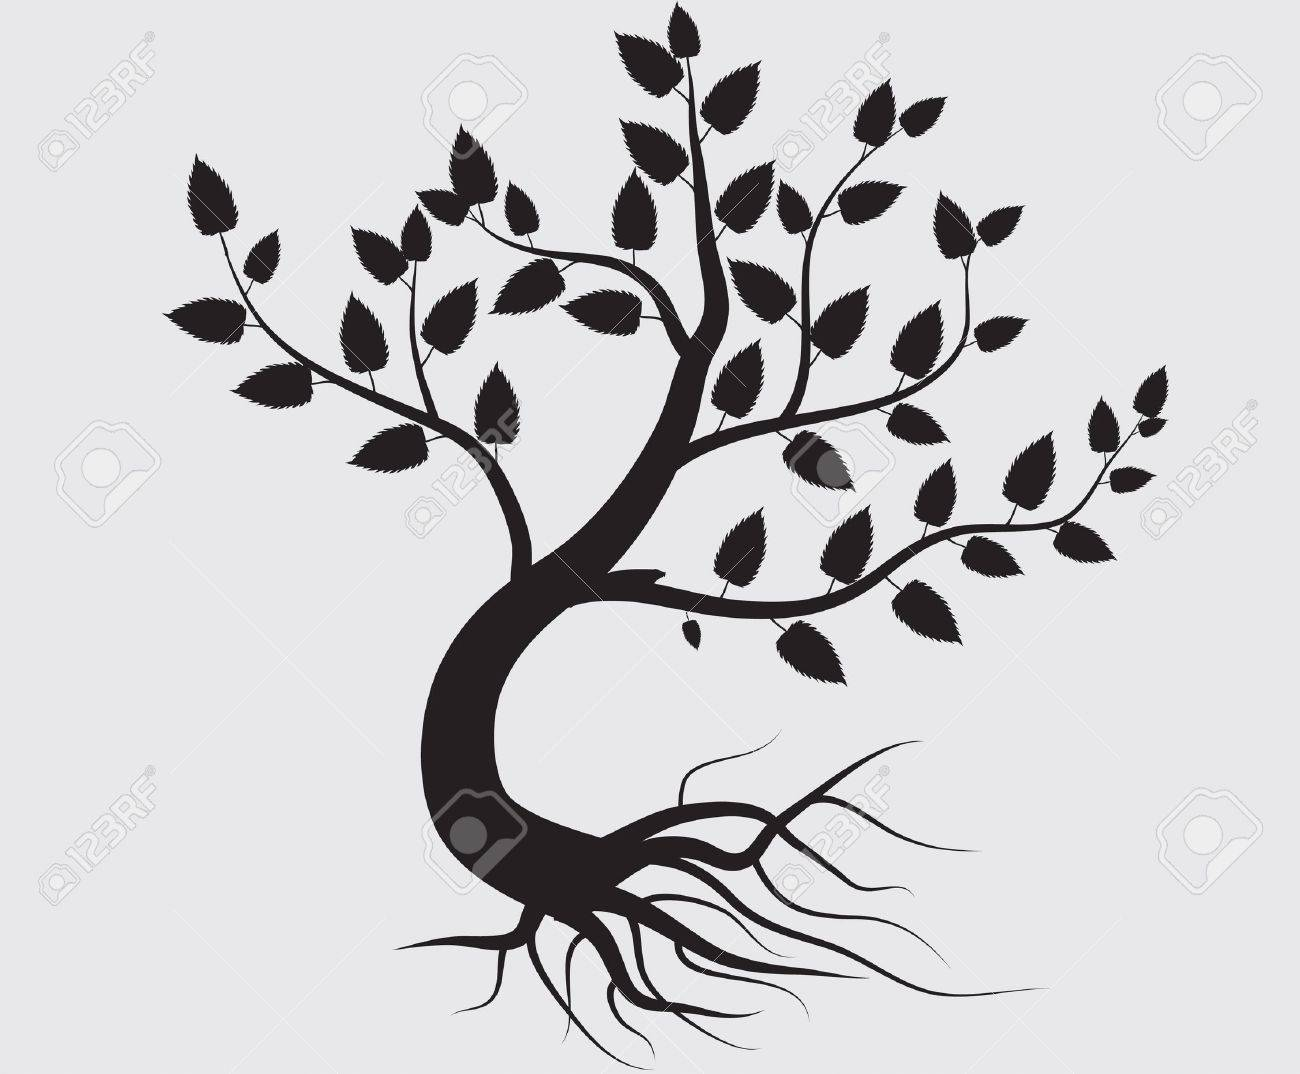 Tree Of Life Clip Art Black And White Vector - whole black tree with